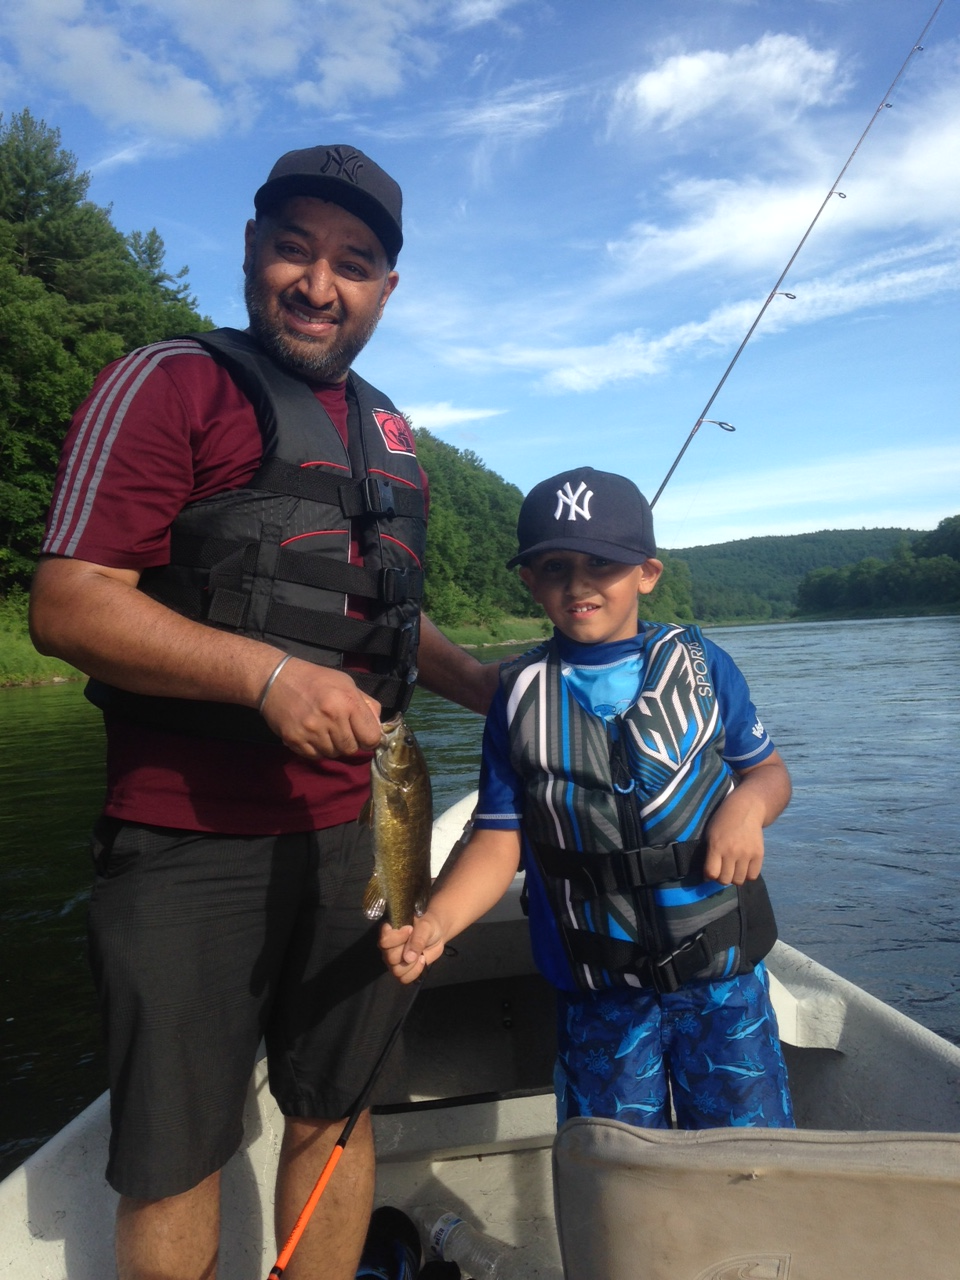 6/13/15 A great day for soft plastic smallmouth bass fishing!